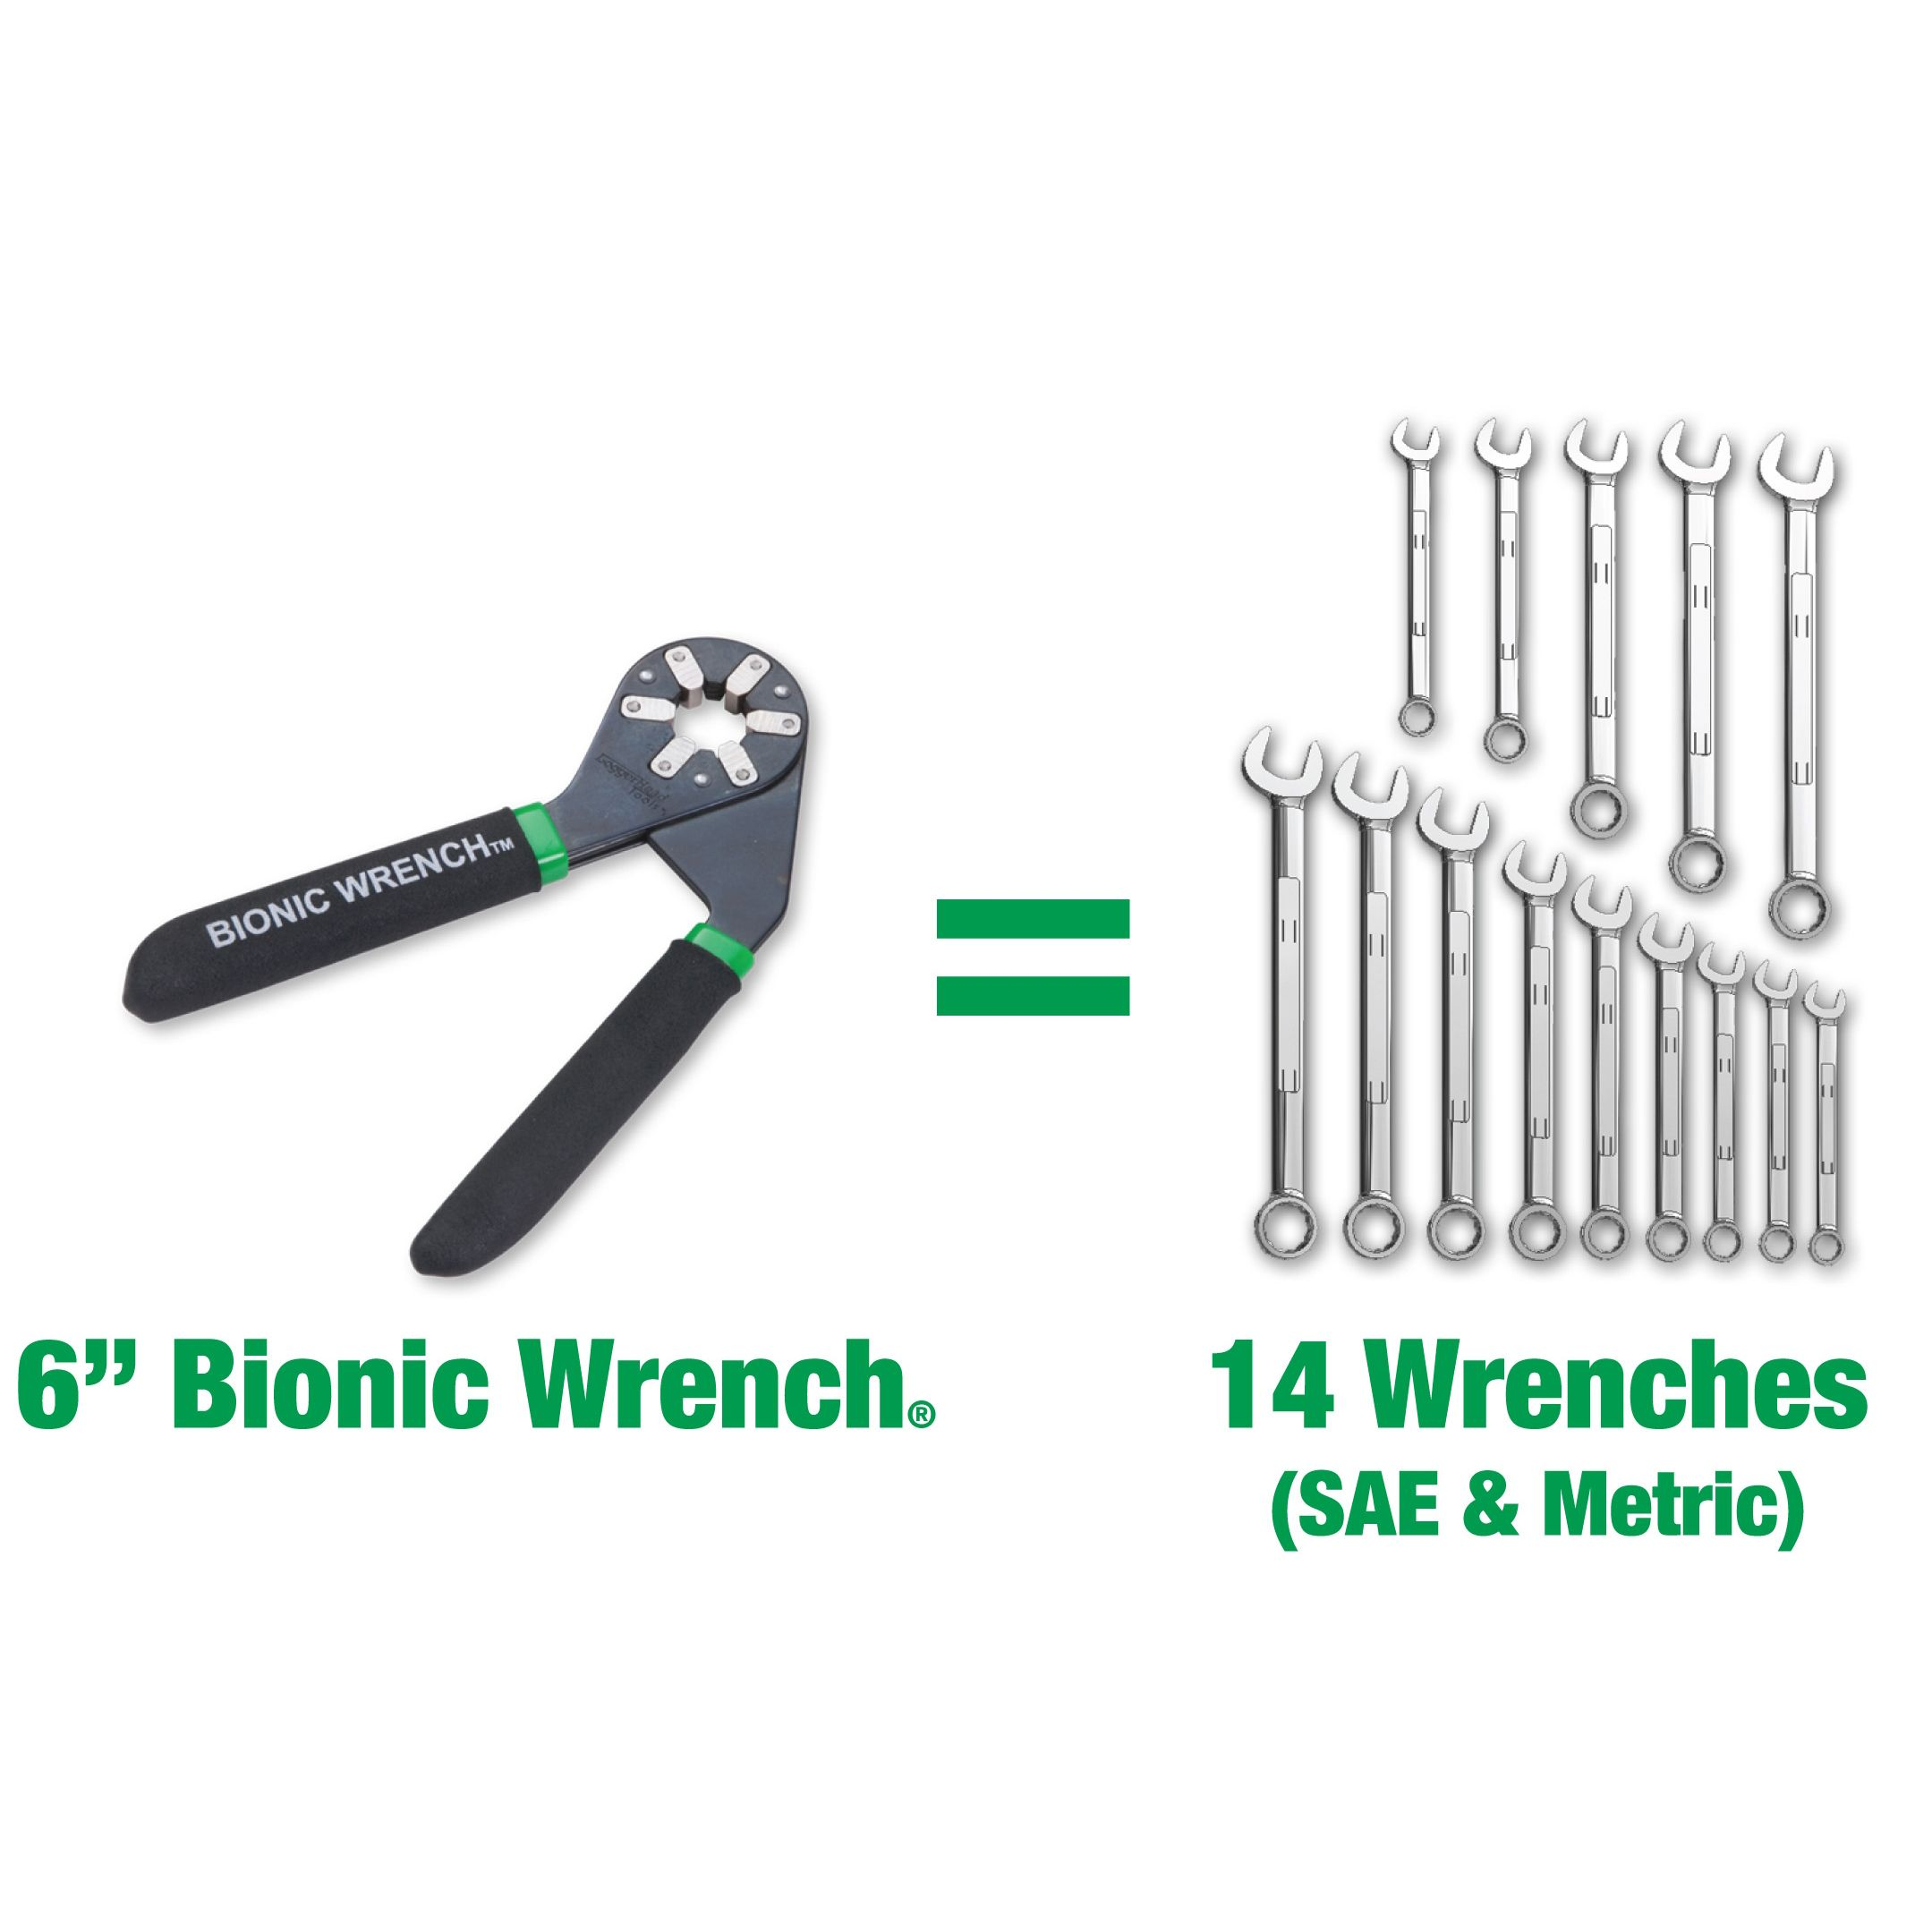 Loggerhead Tools 6 in. Bionic Wrench®